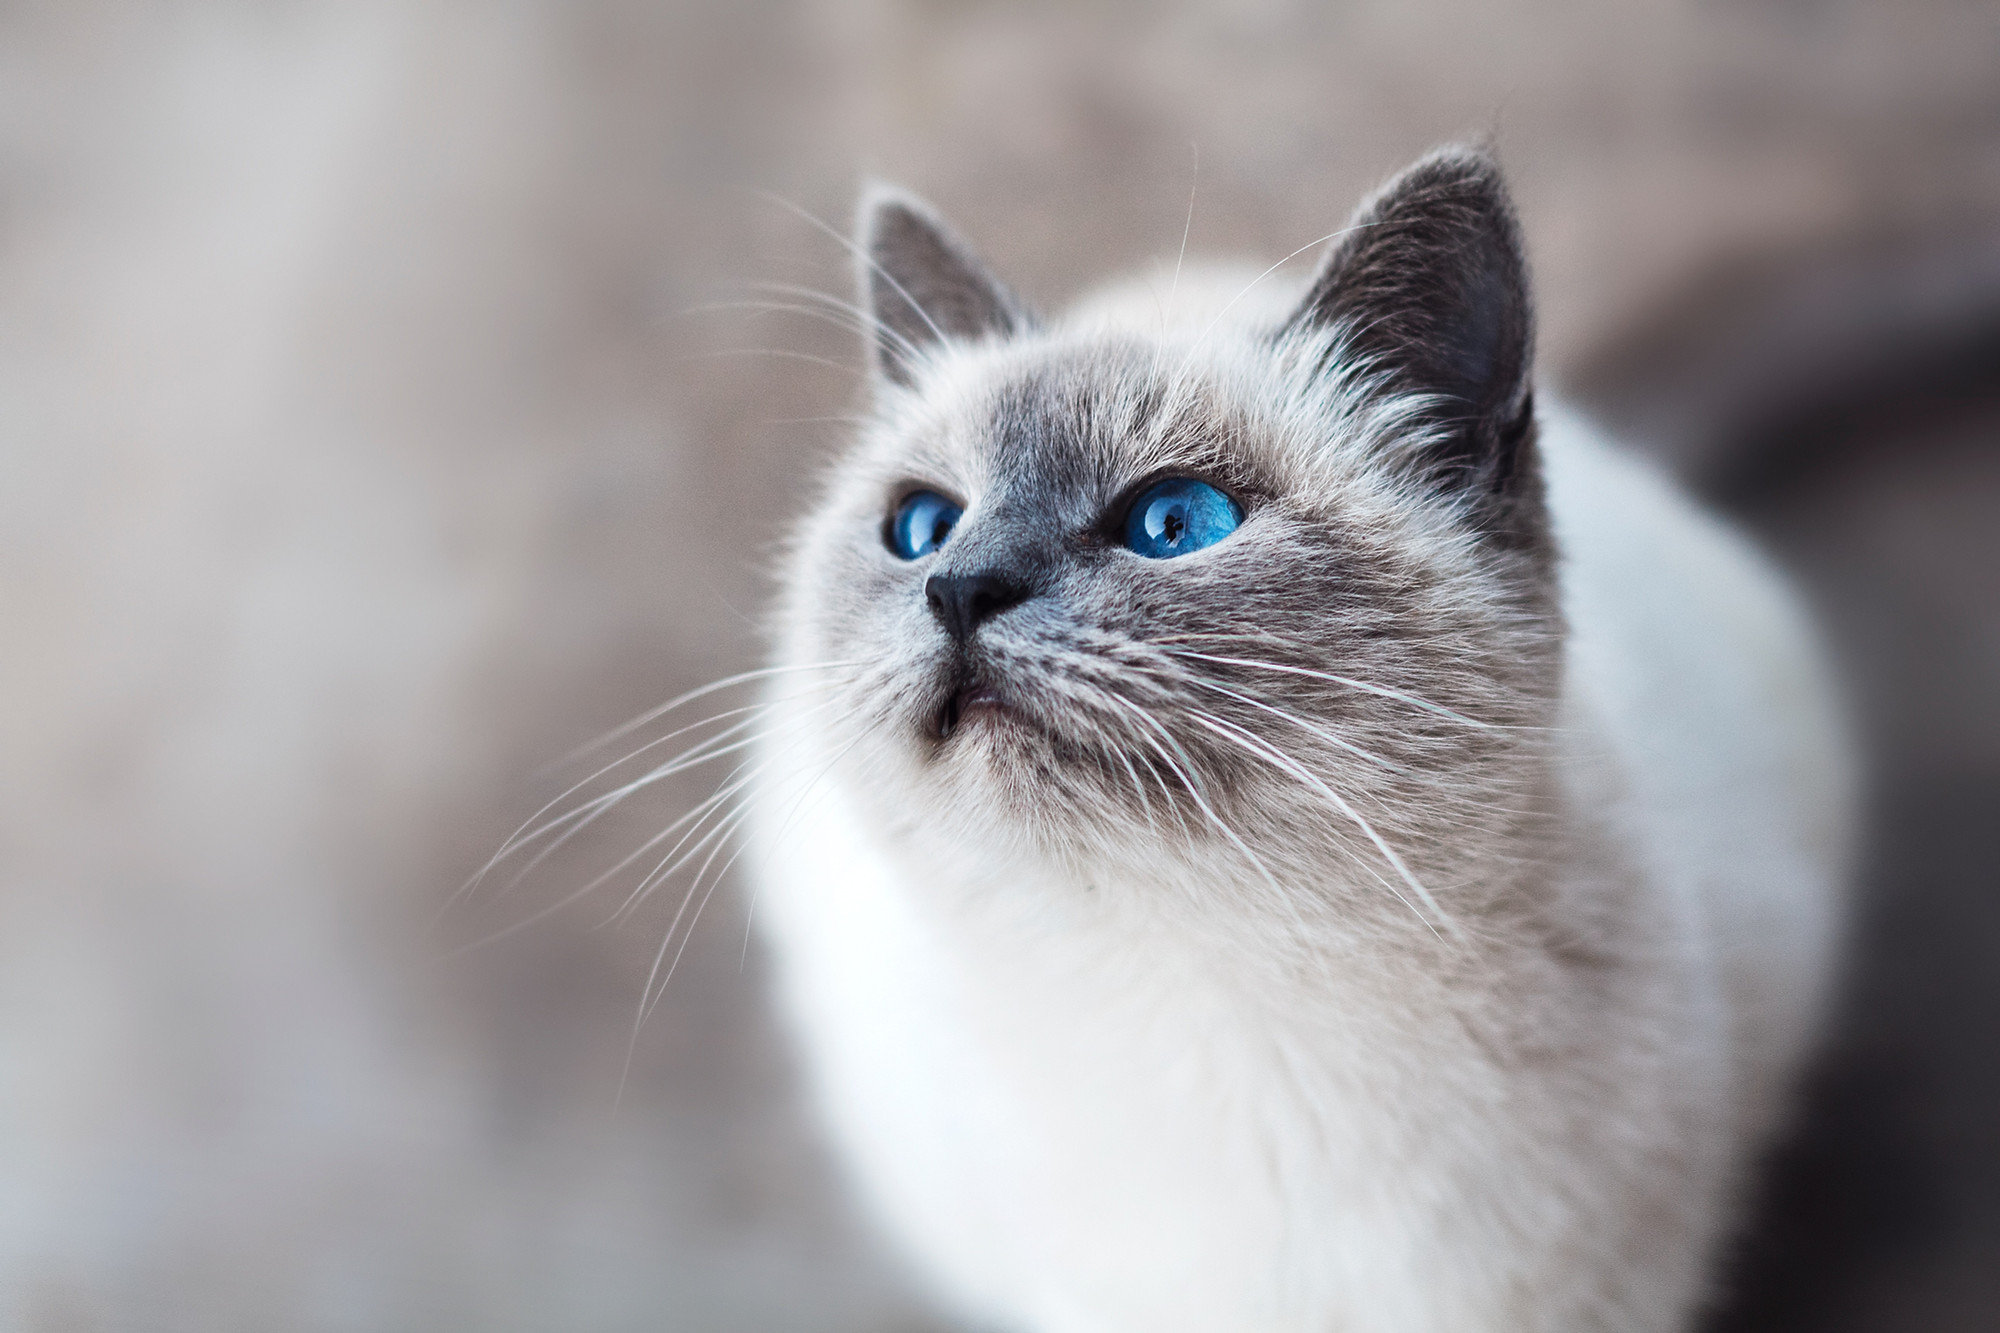 In Depth Should I Feed My Cat With Chronic Kidney Disease A Raw Diet